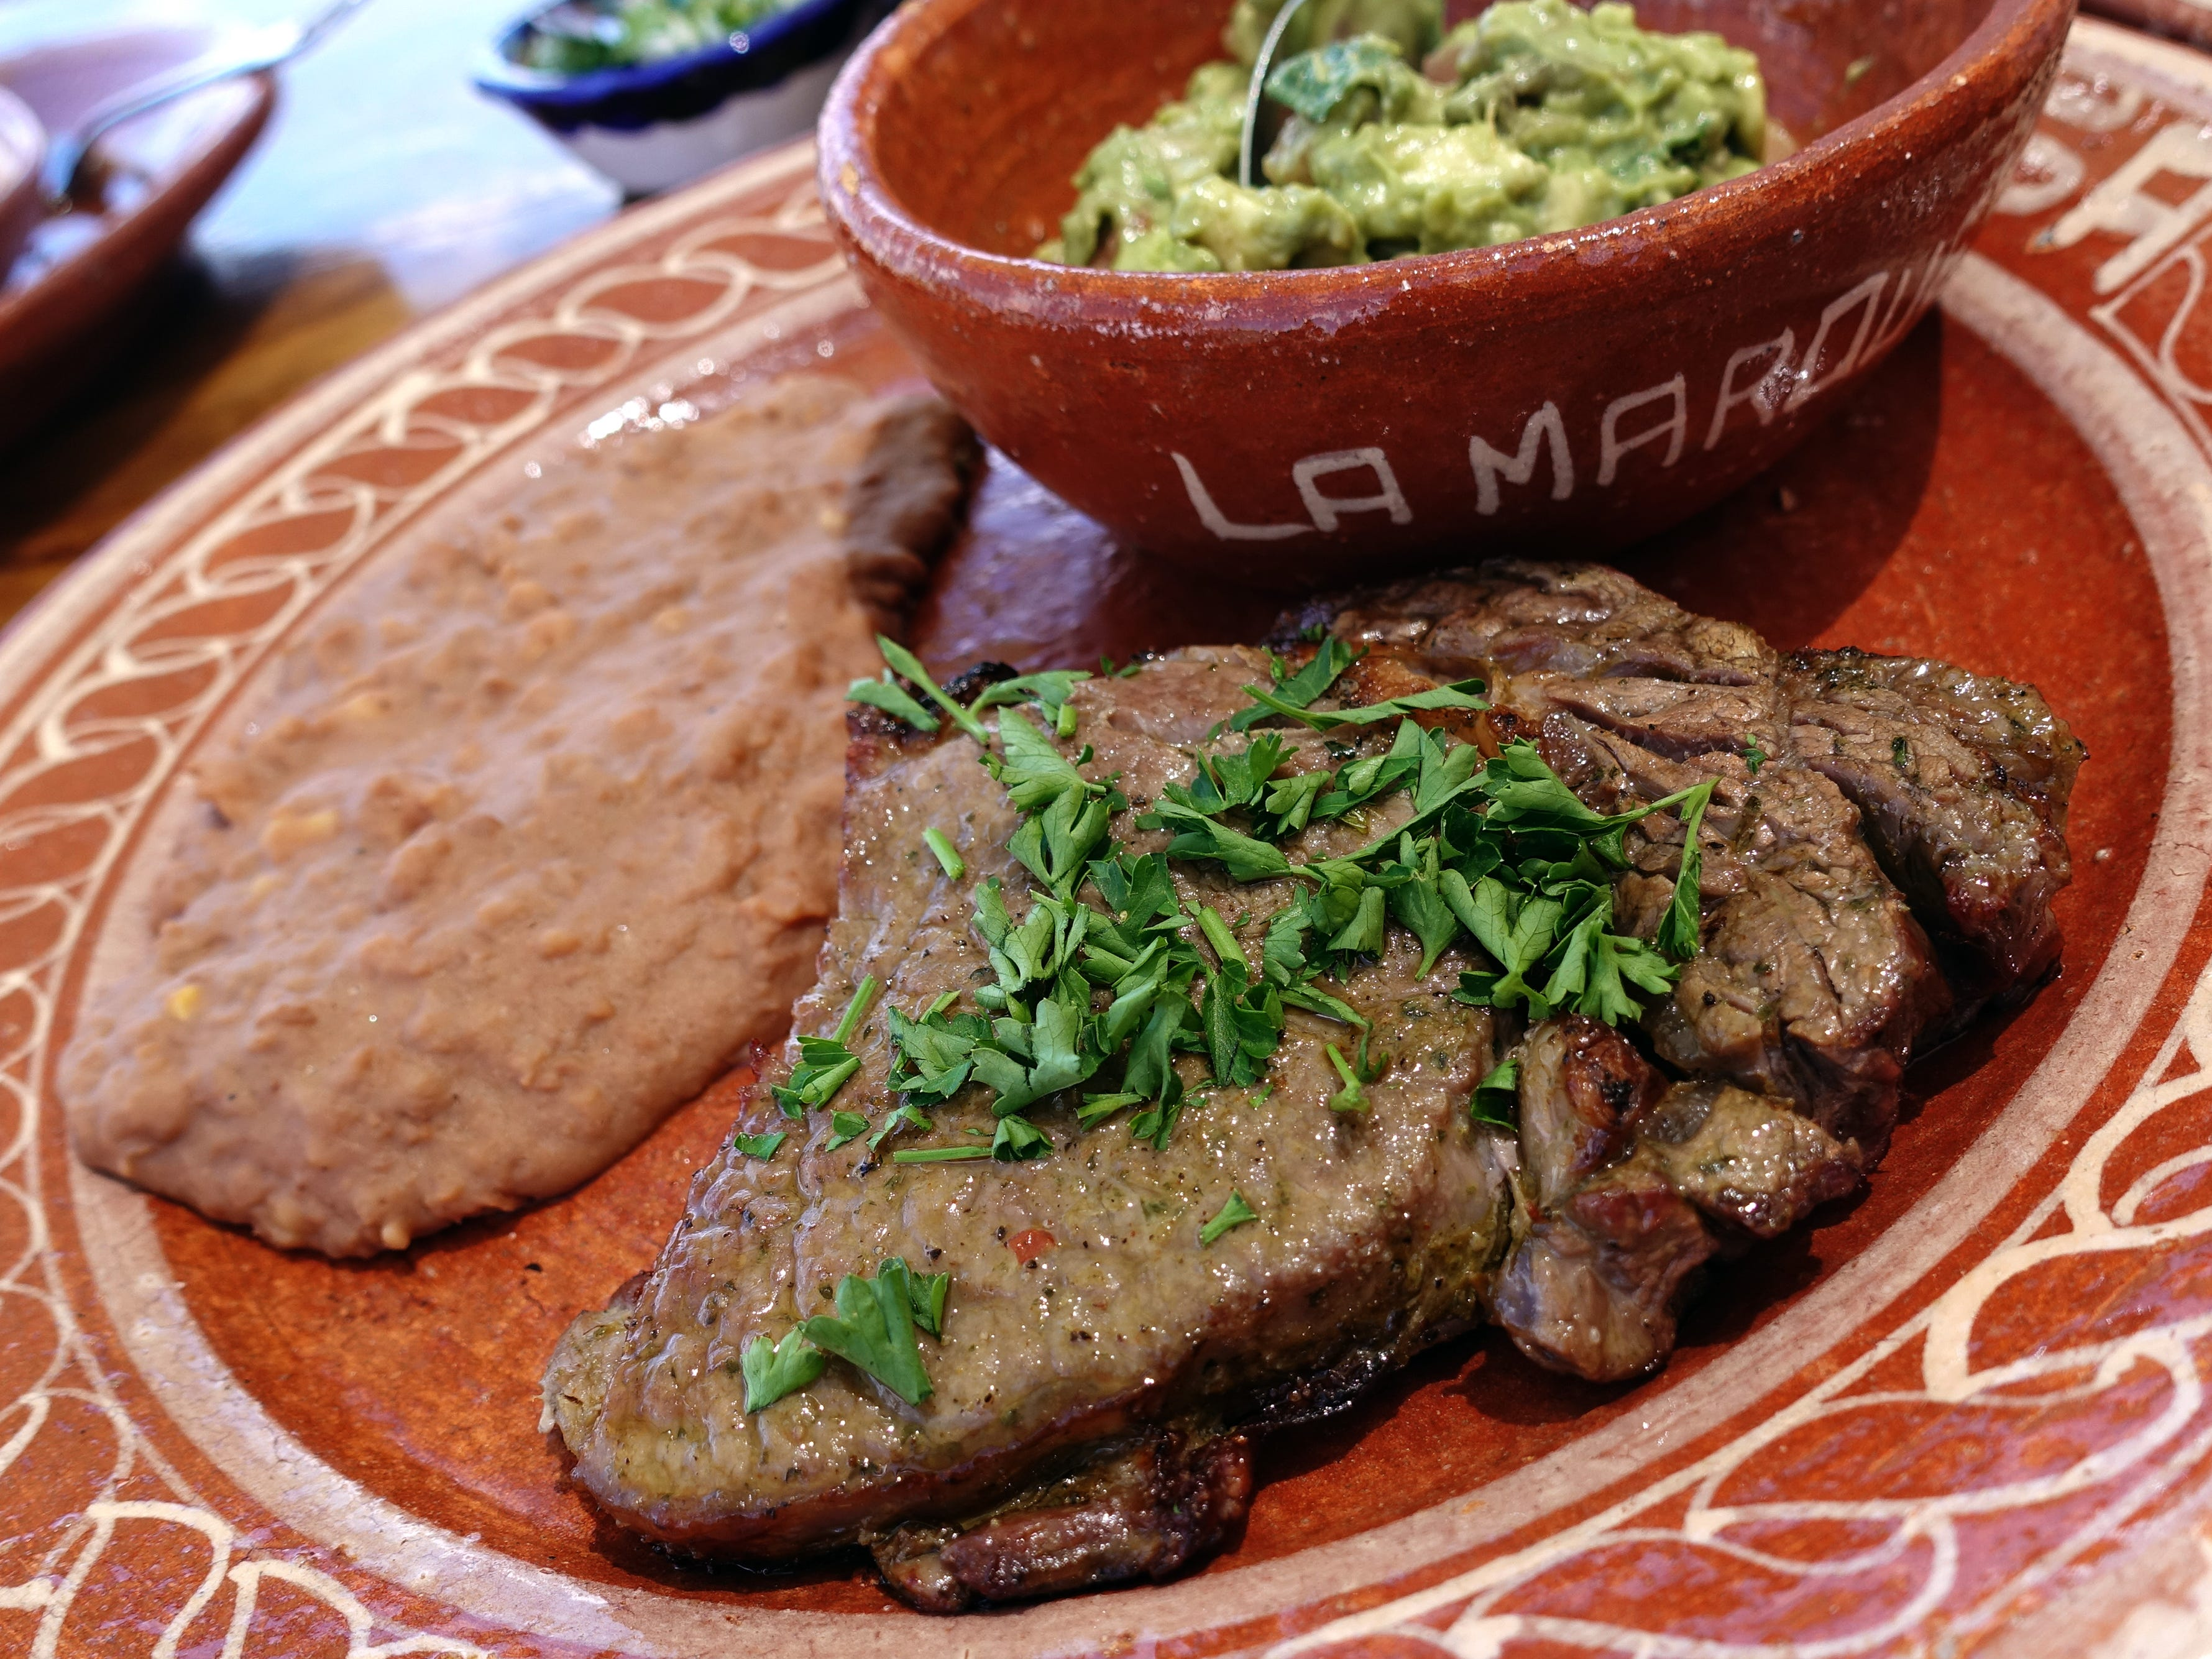 Roasted ribeye steak with frijoles refritos and guacamole at La Marquesa in Phoenix.